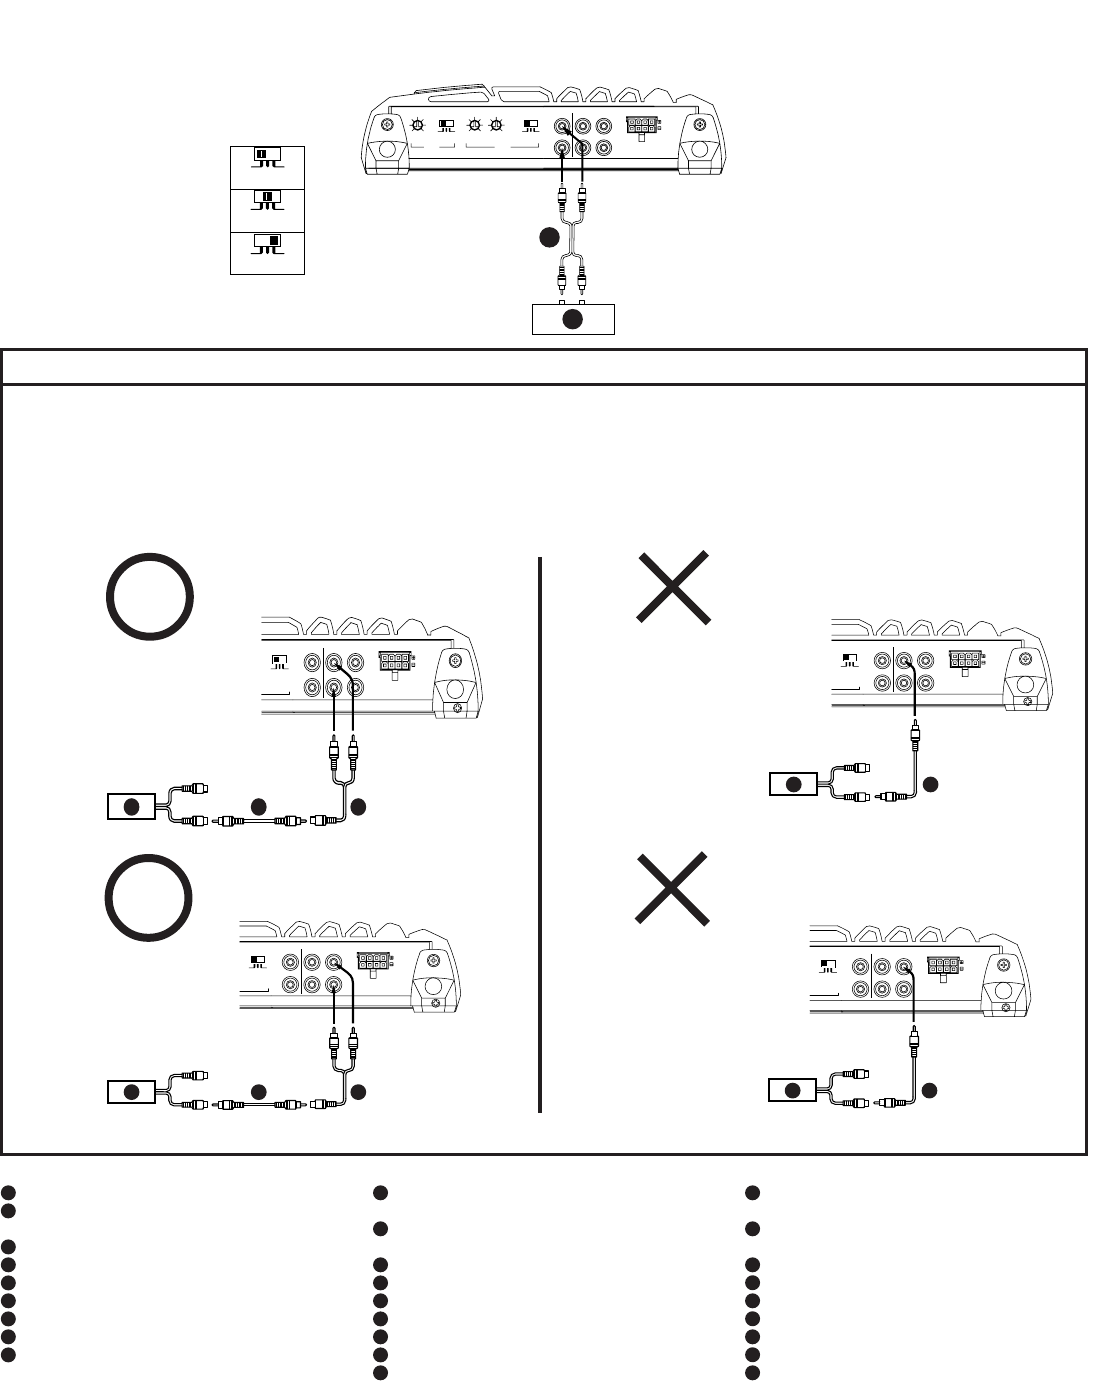 Alpine Amp Mrp T220 Wiring Diagram Electrical Mono Page 14 Of Stereo Amplifier User Guide Rh Audio Manualsonline Com Car